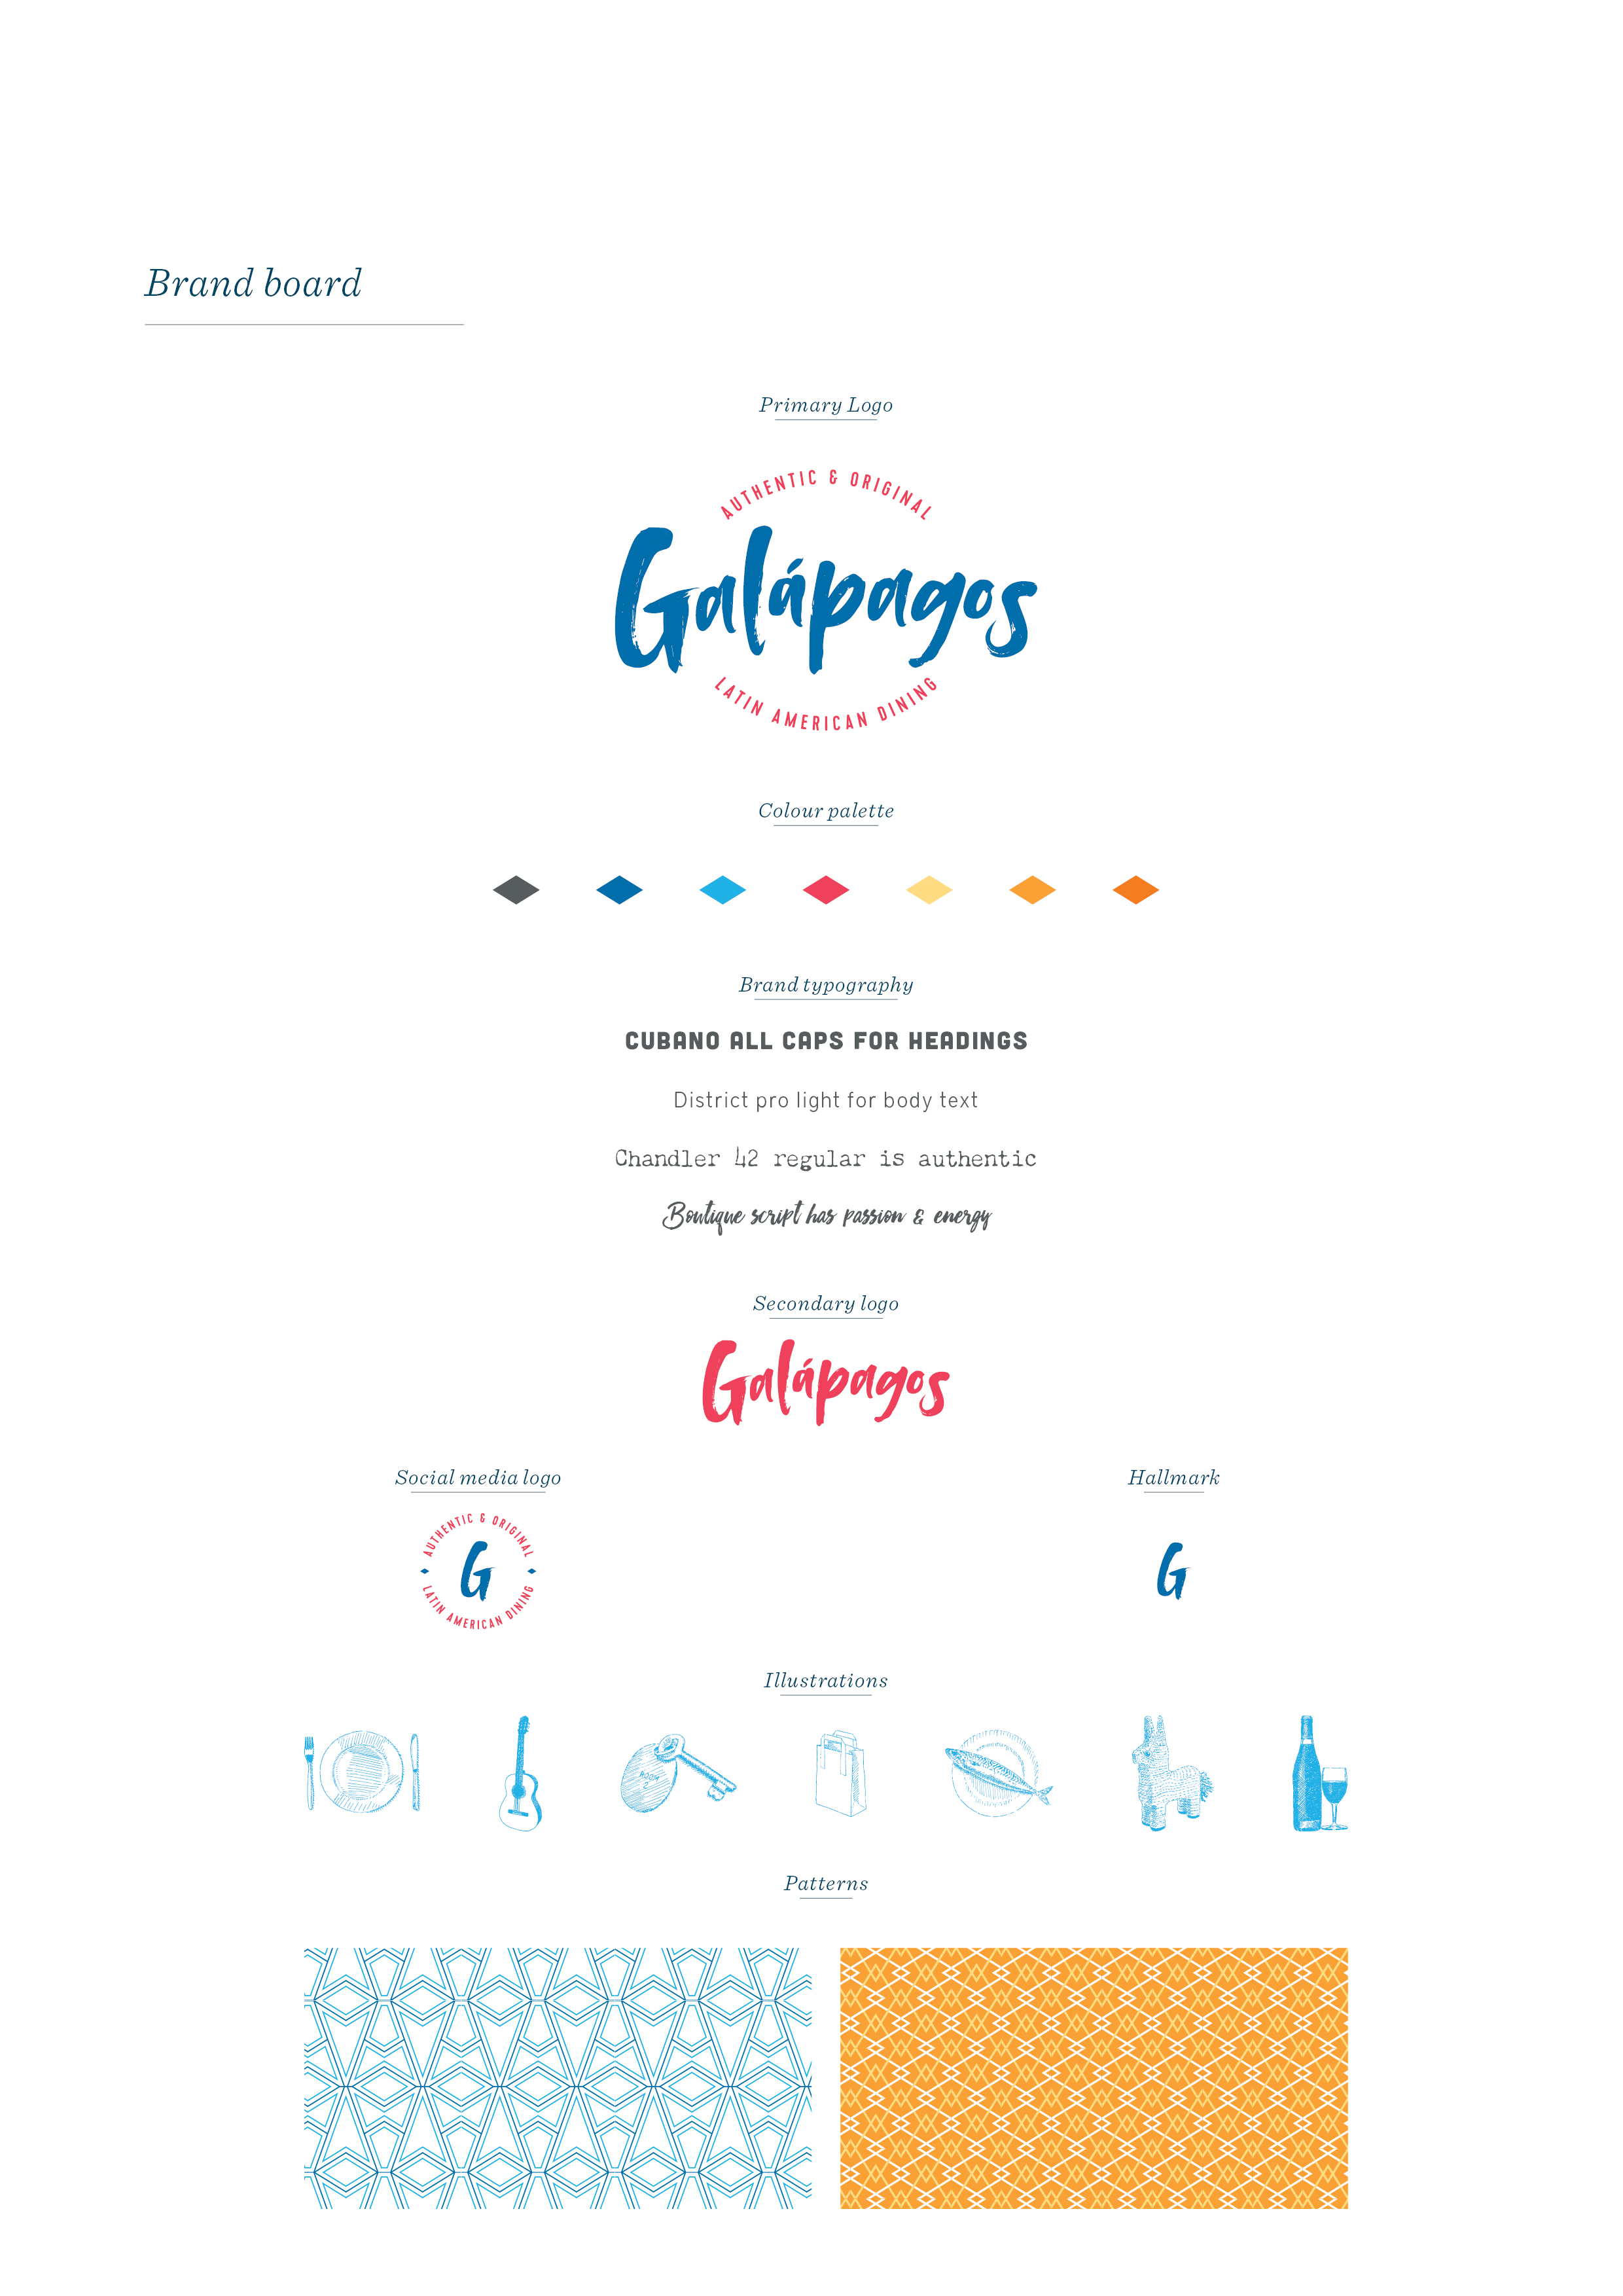 Galapagos Latin American Restaurant, Kent, logo design and brand identity by Ditto Creative, boutique branding agency, Kent